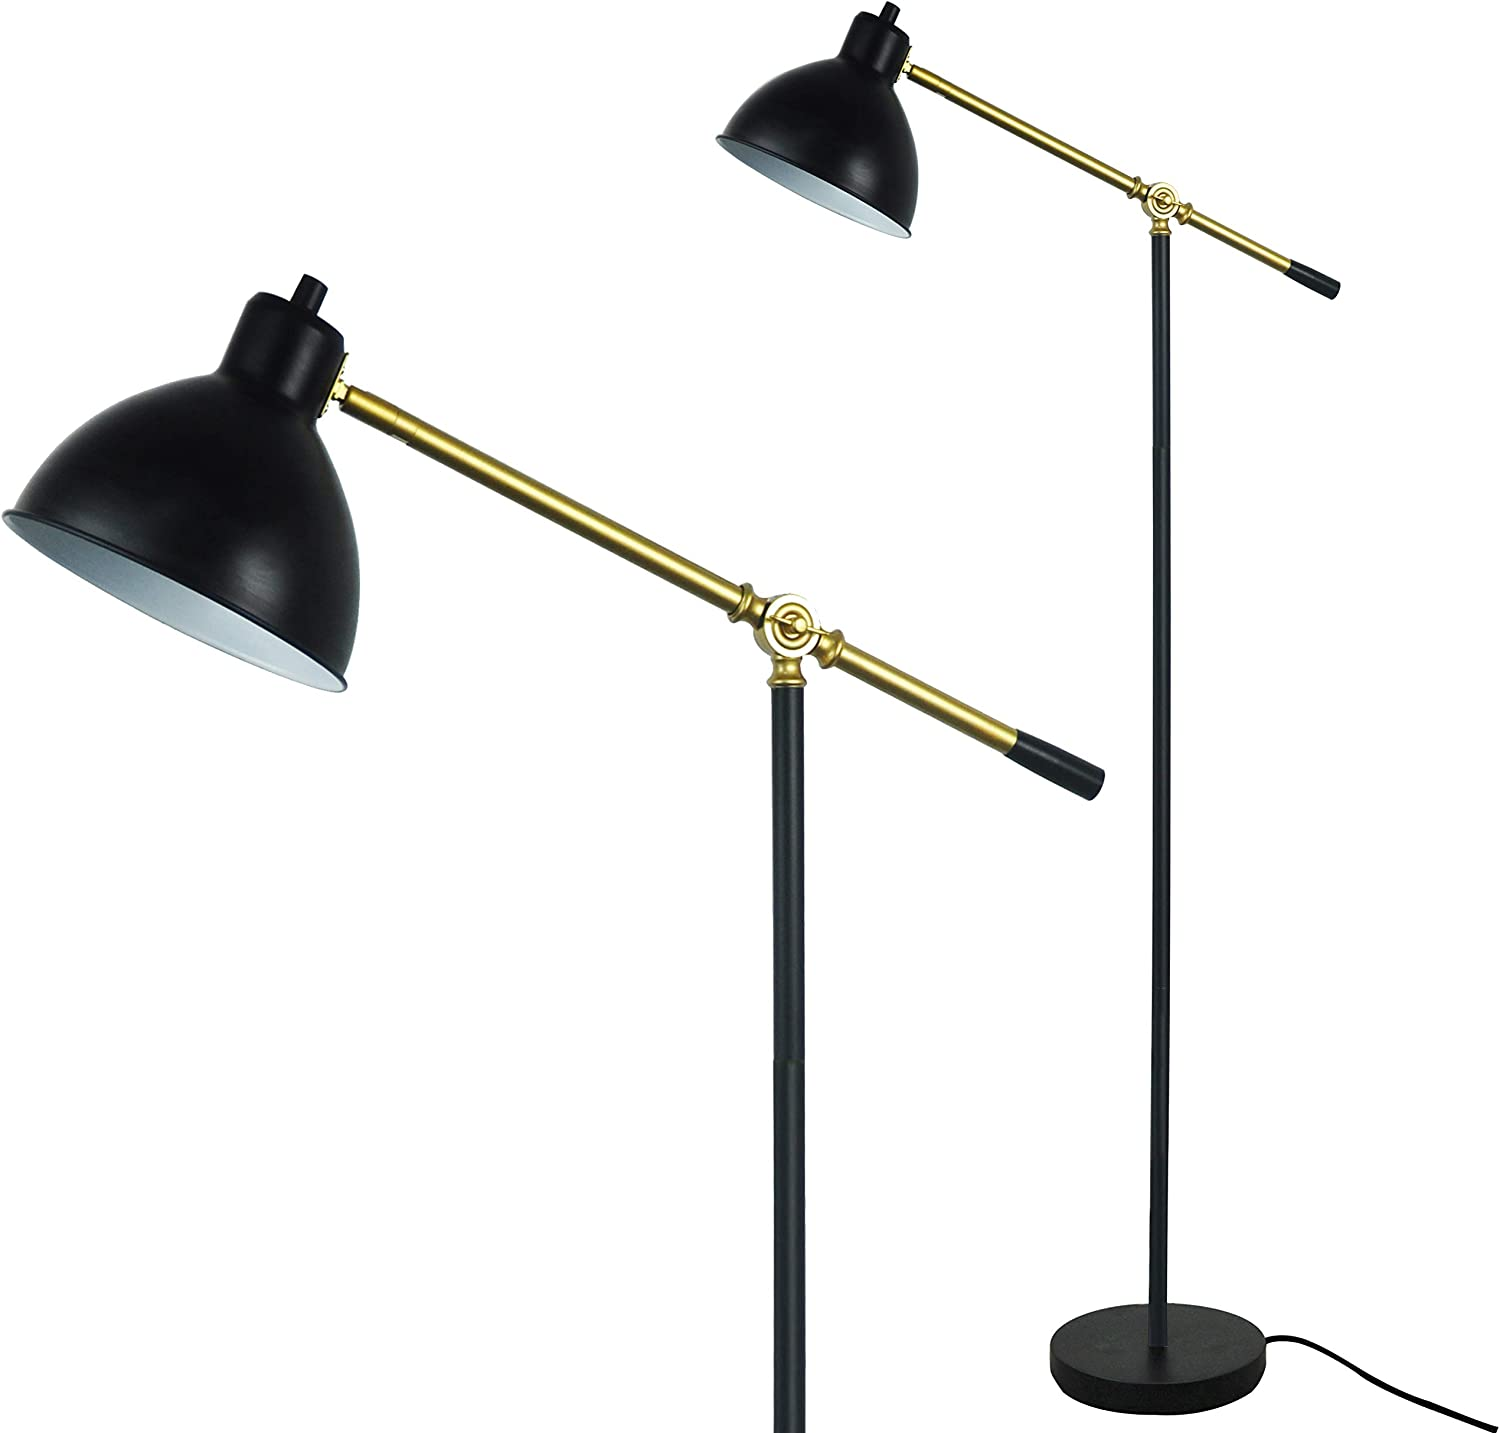 Floor Lamp for Reading by LightAccents – Ashford Adjustable Reading Lamp – Cantilever Standing Pharmacy Style Reading Light Black with Brass Accents